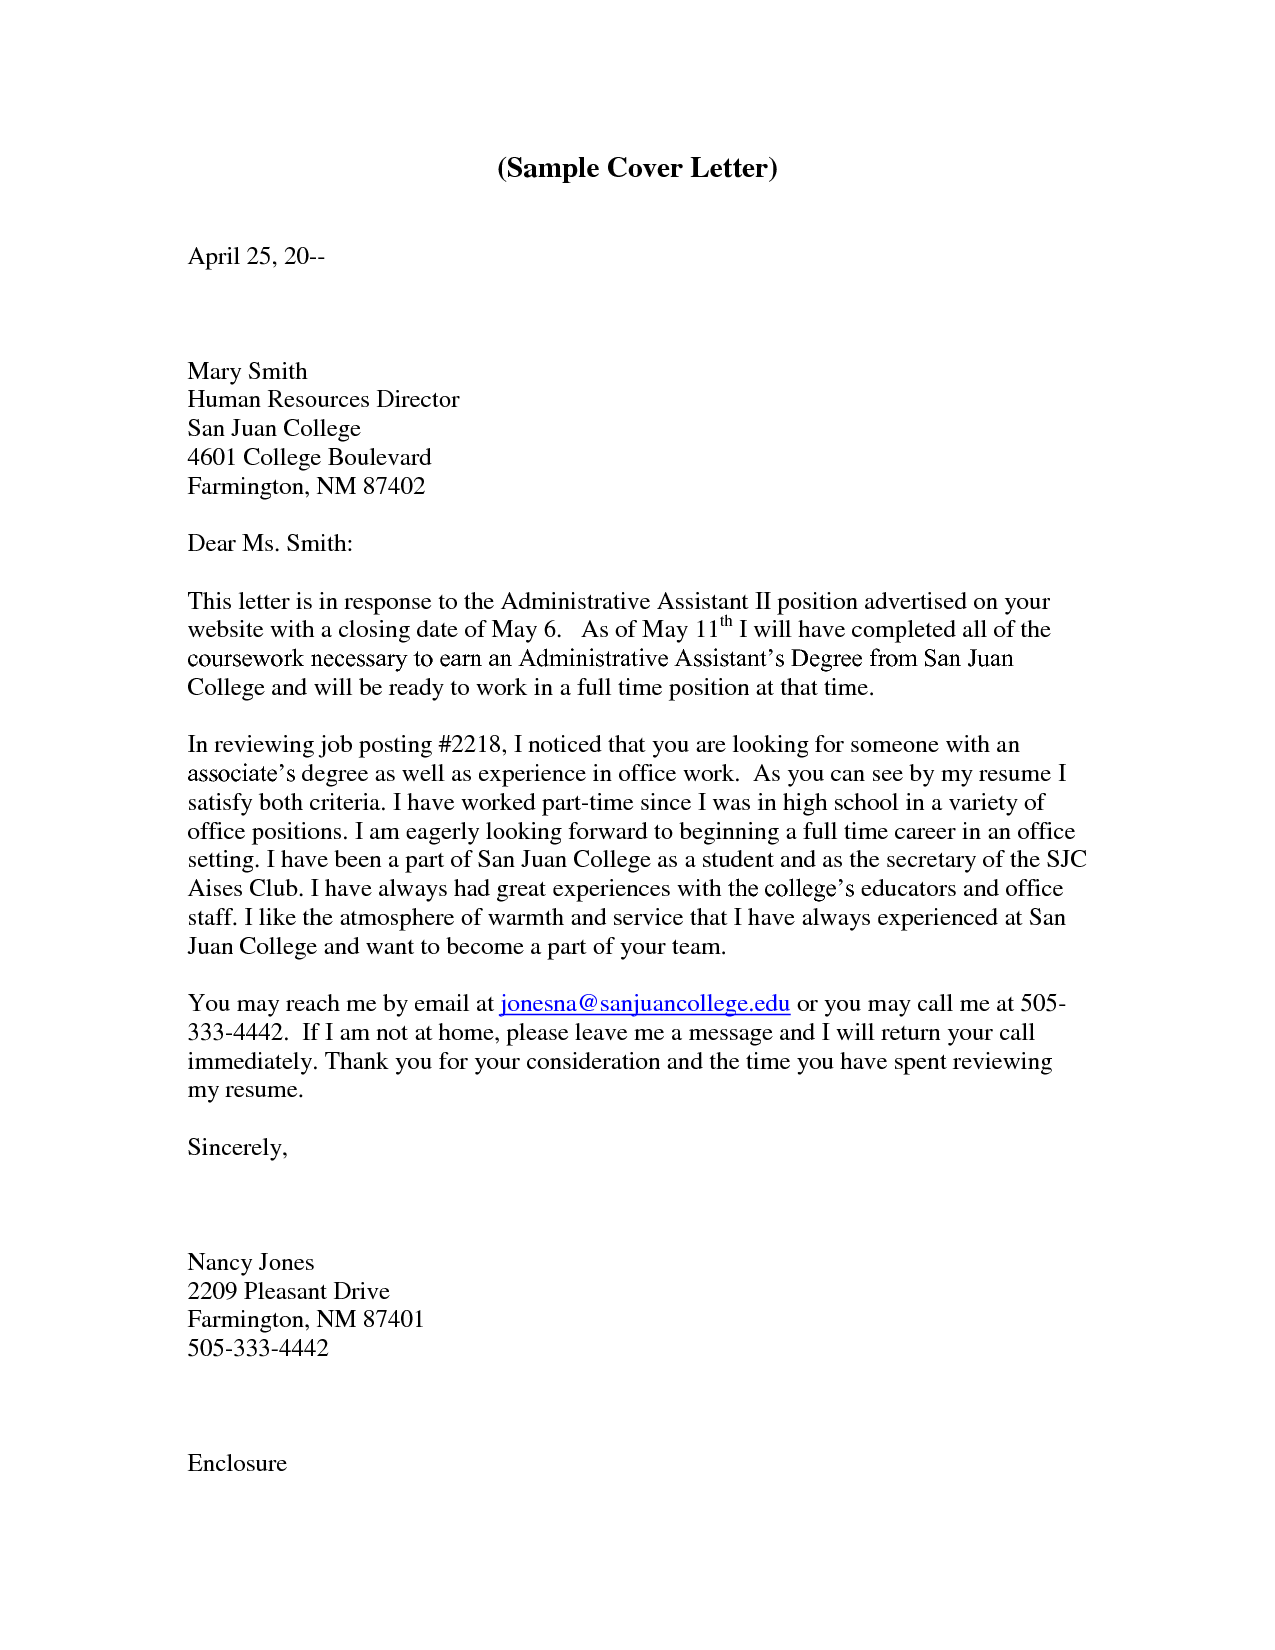 administrative assistant cover letter cover letter for office assistant - Administrative Assistant Cover Letter